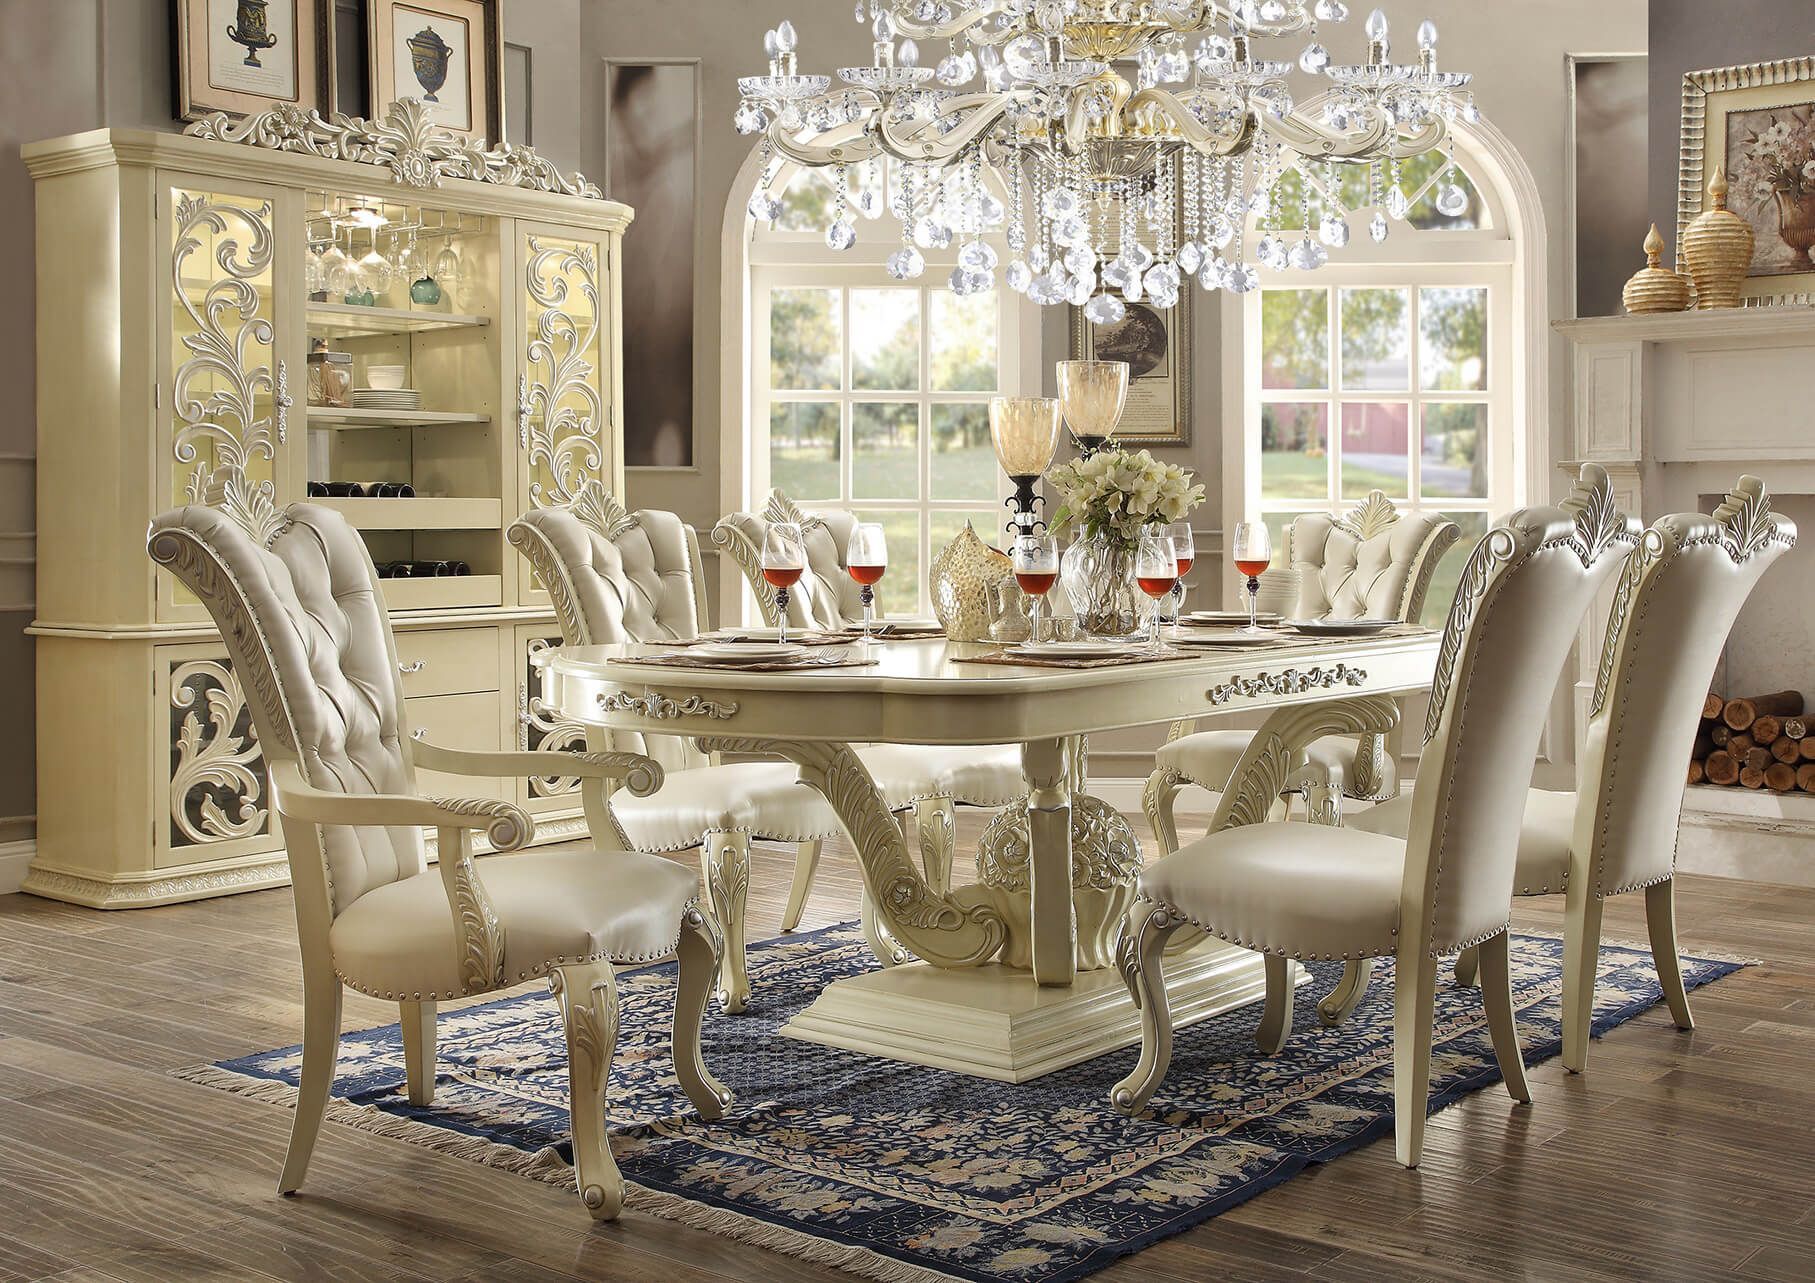 9 Piece Homey Design Marbella Hd27 Dining Set 9 Piece Homey Extraordinary 9 Pcs Dining Room Set Inspiration Design